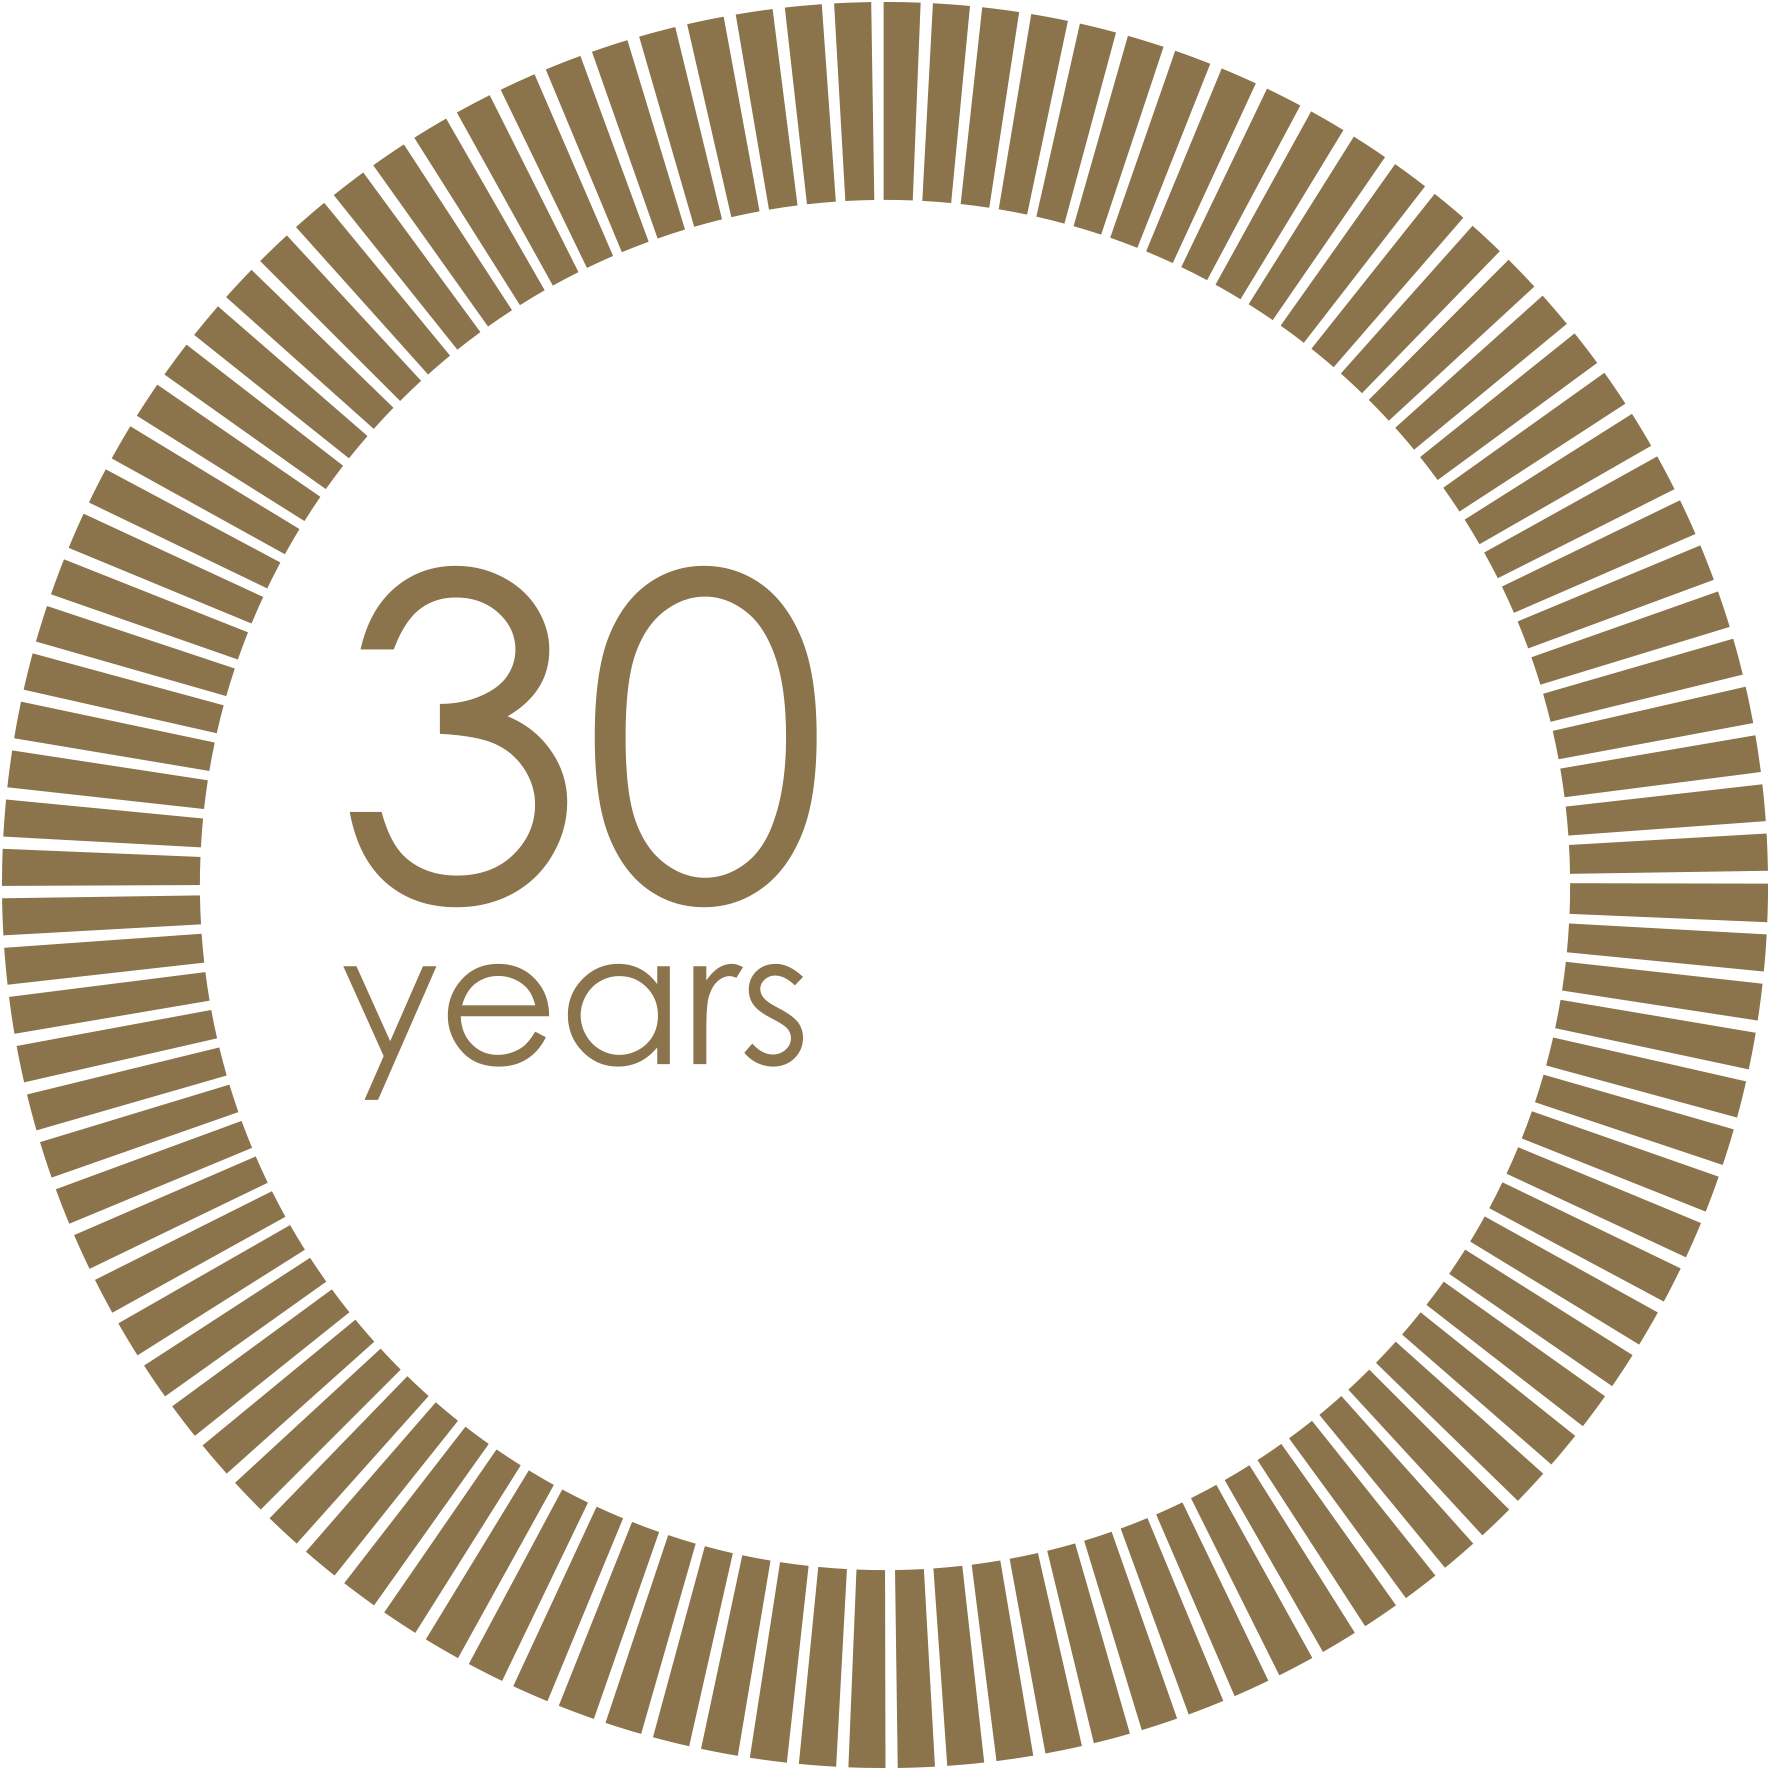 Winterbotham 30 years